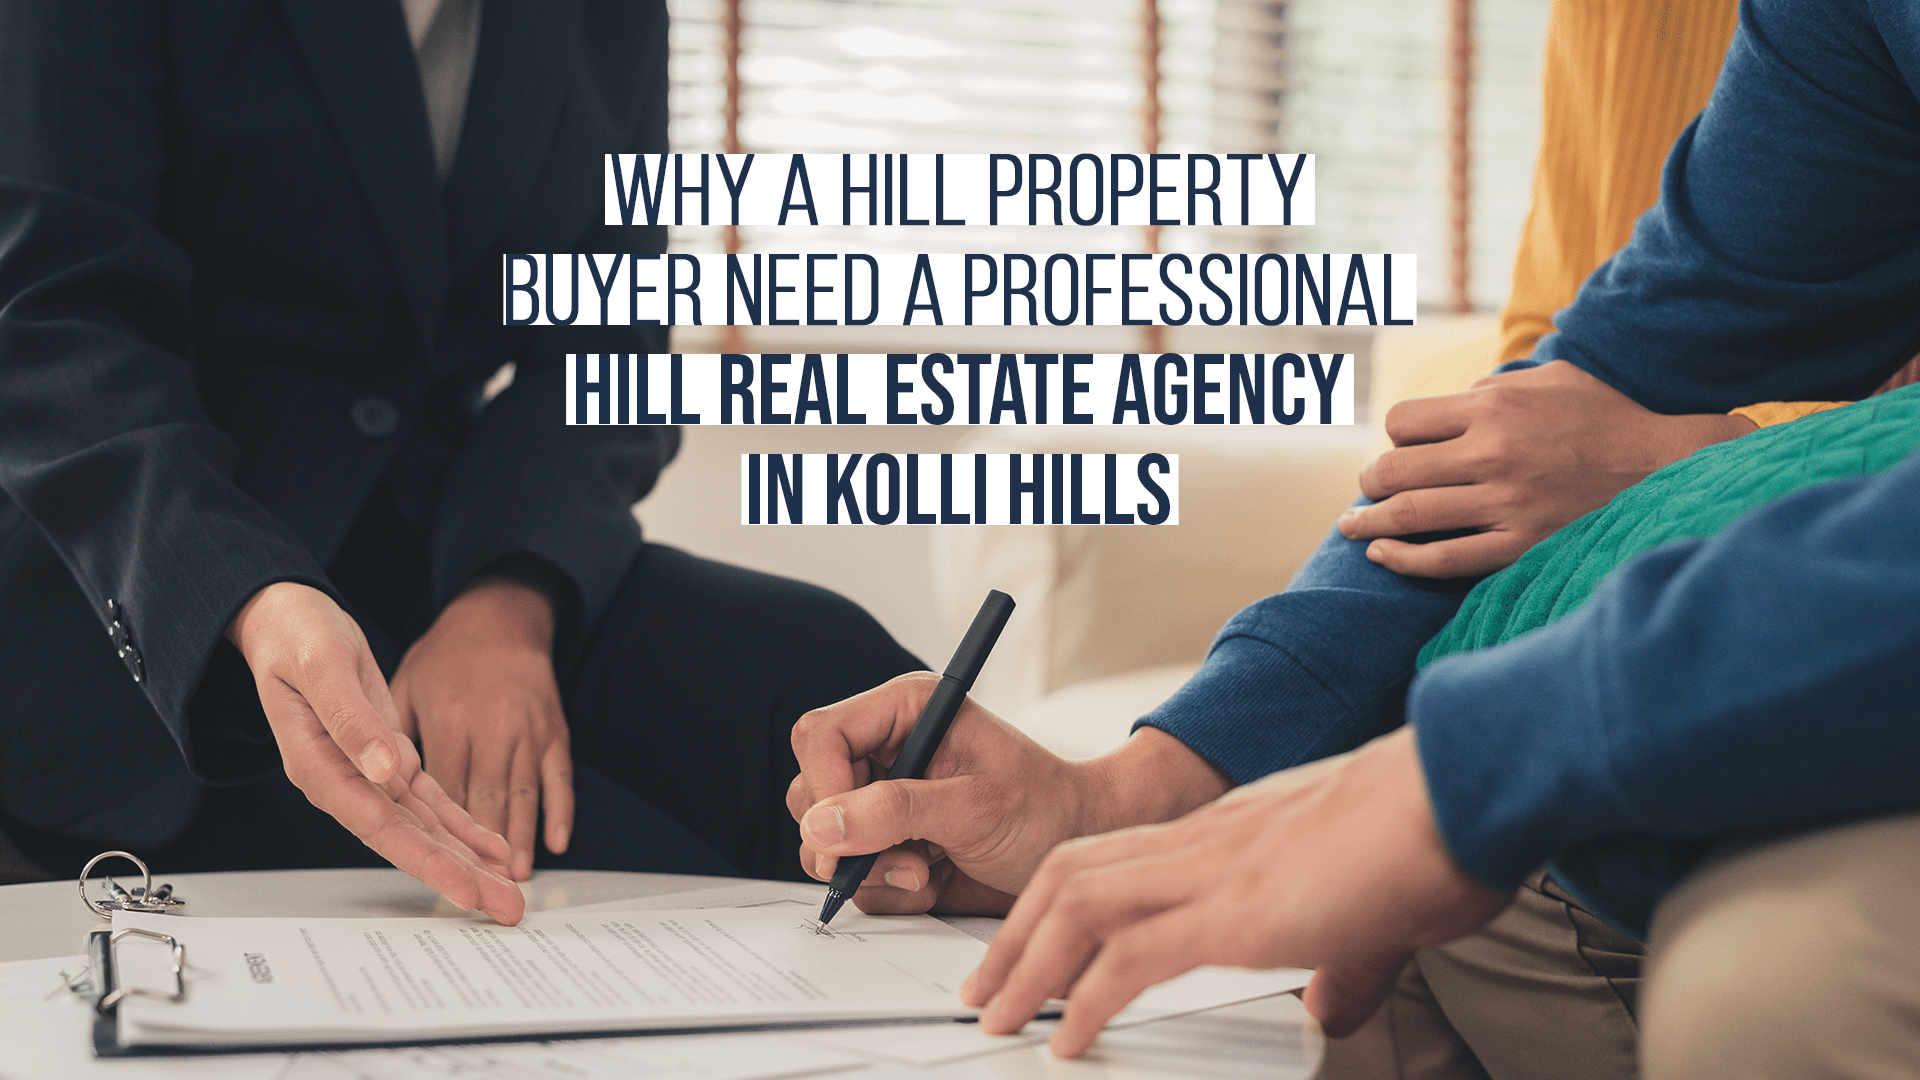 Why a Property Buyer need A  Professional Hill Real Estate Agency in Kolli Hills?